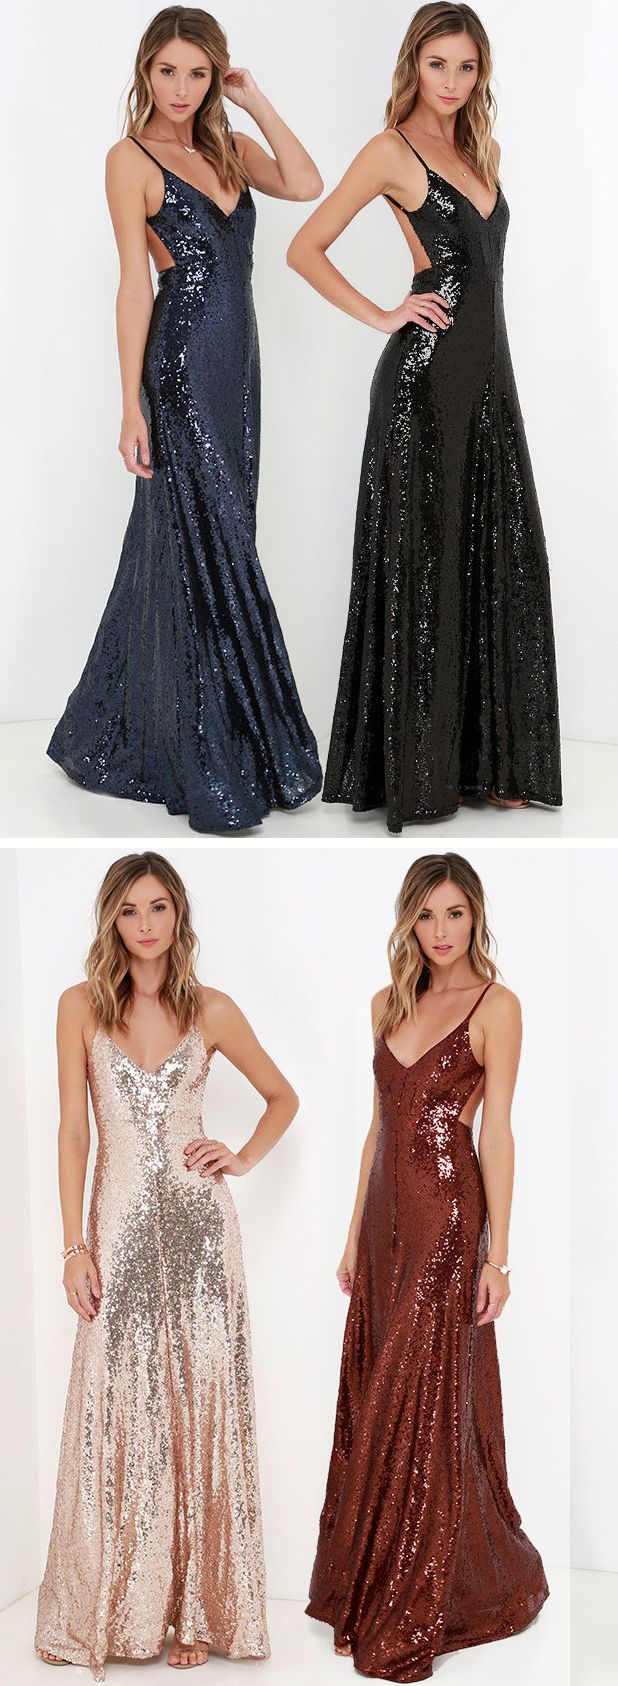 A triangle bodice is packed with elegant appeal thanks to thousands of shimmering sequins, while spaghetti straps frame a sultry open back. #lovelulus